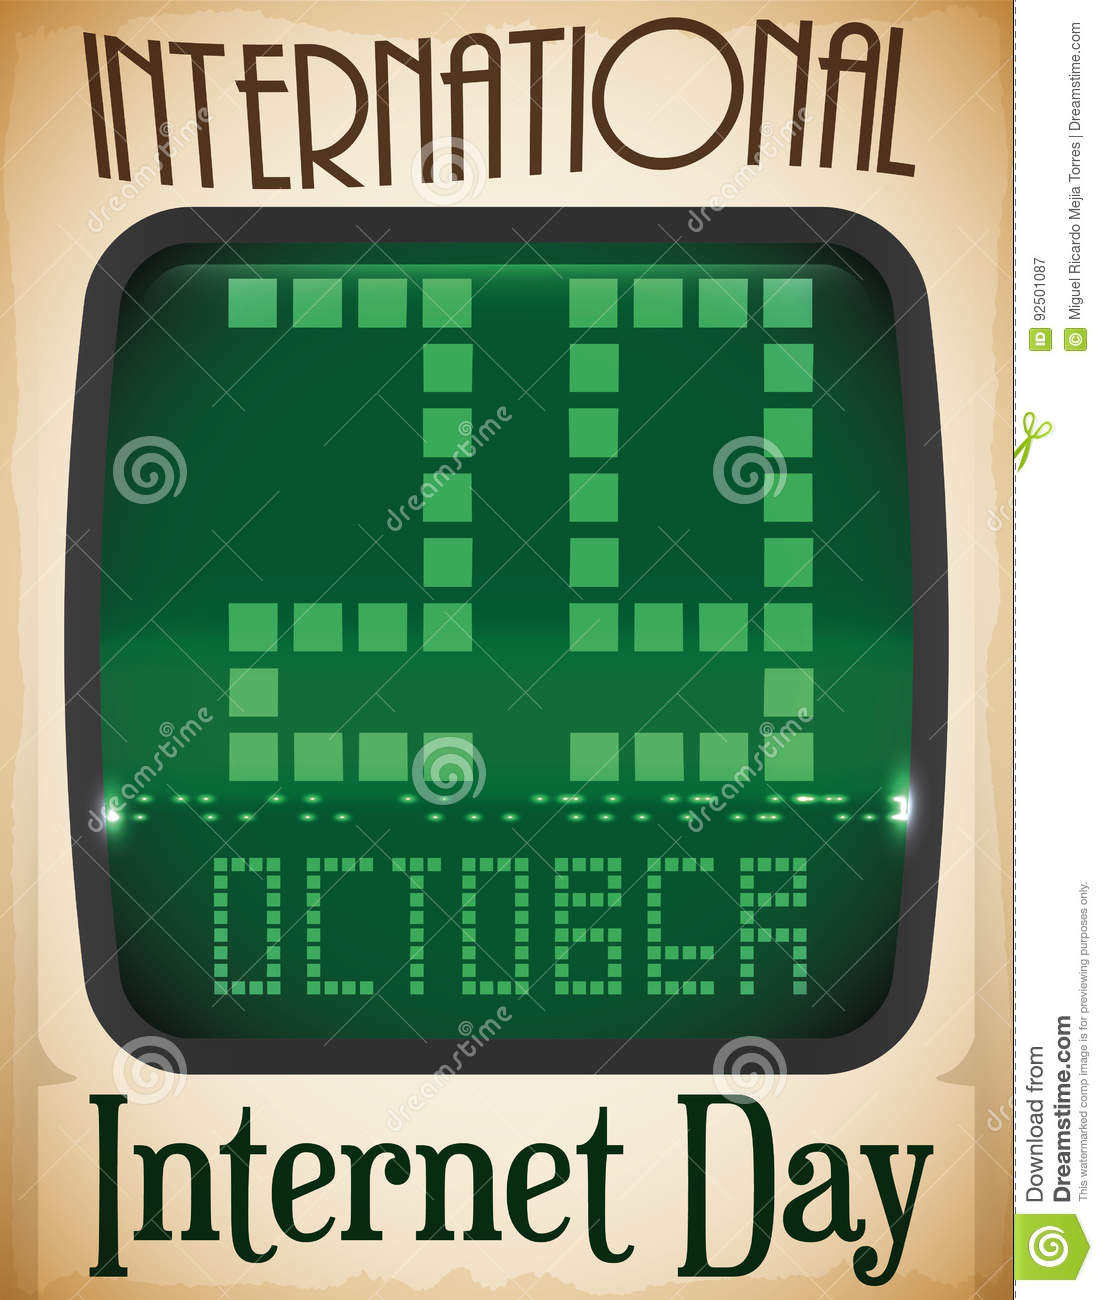 Retro Computer Screen and Reminder Date for Internet Day, Vector Illustration